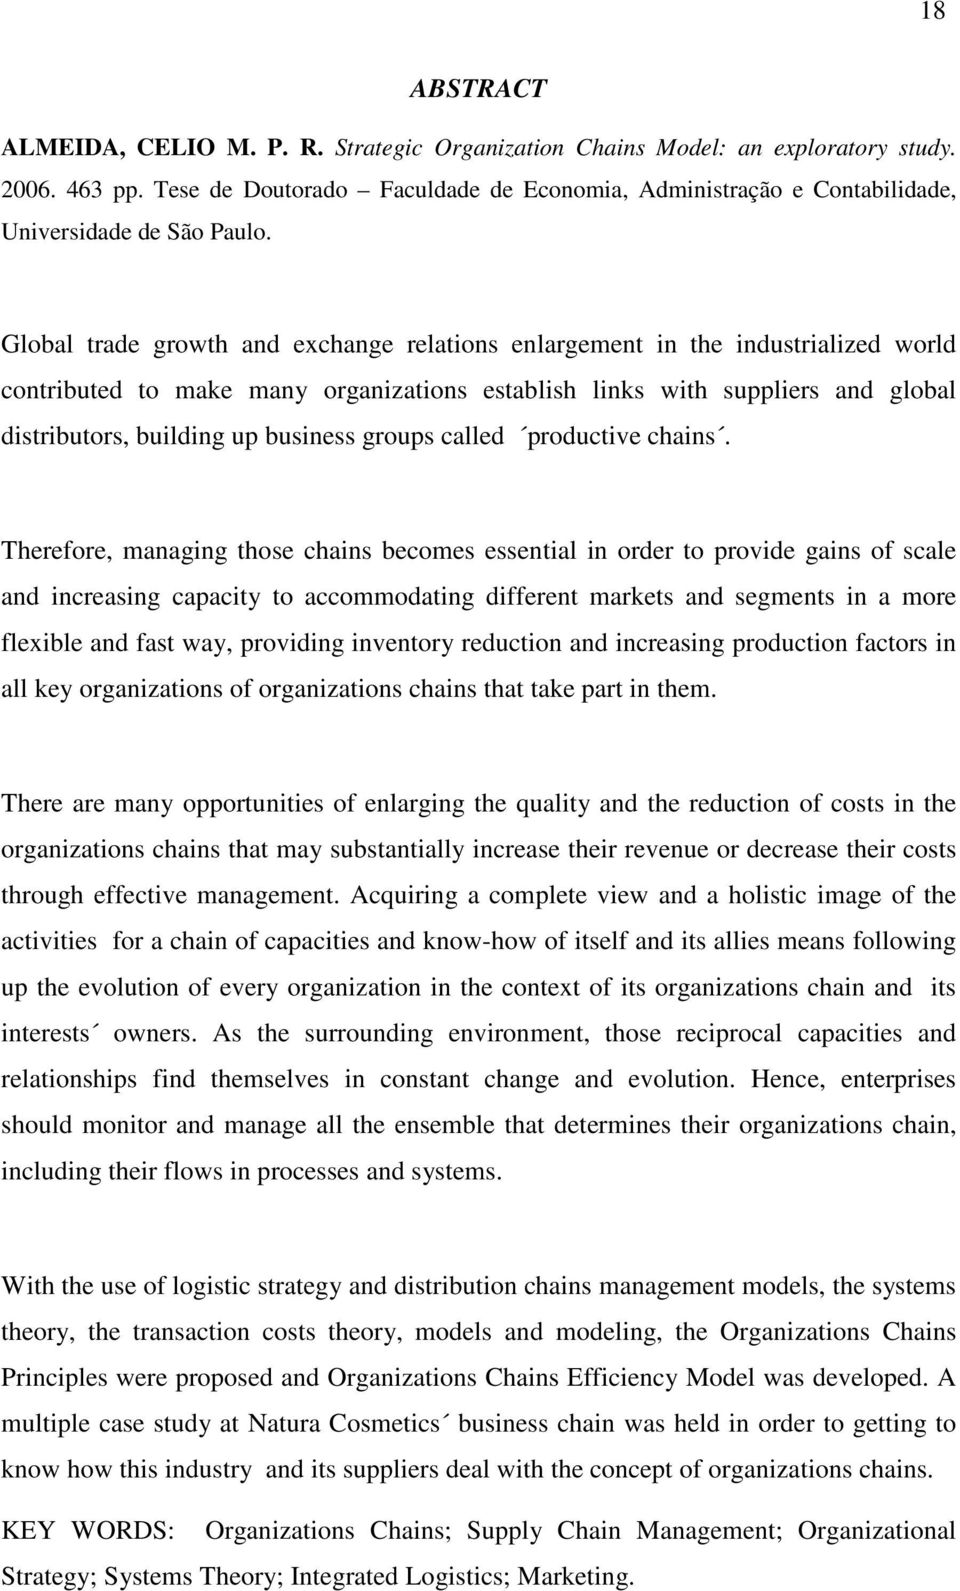 Global trade growth and exchange relations enlargement in the industrialized world contributed to make many organizations establish links with suppliers and global distributors, building up business